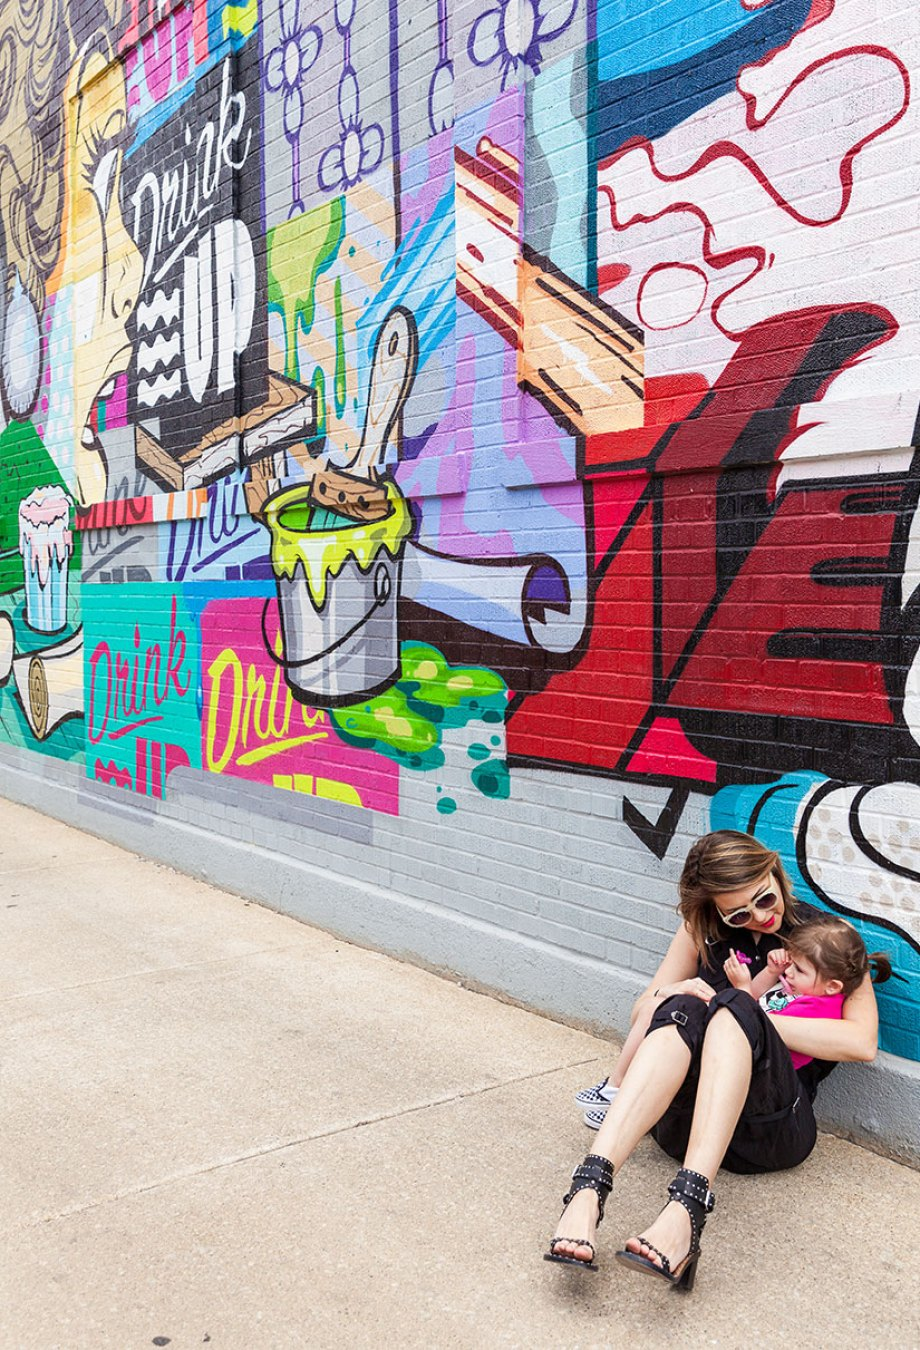 This is a post by Glitter and Bubbles that showcases street art throughout Chicago.